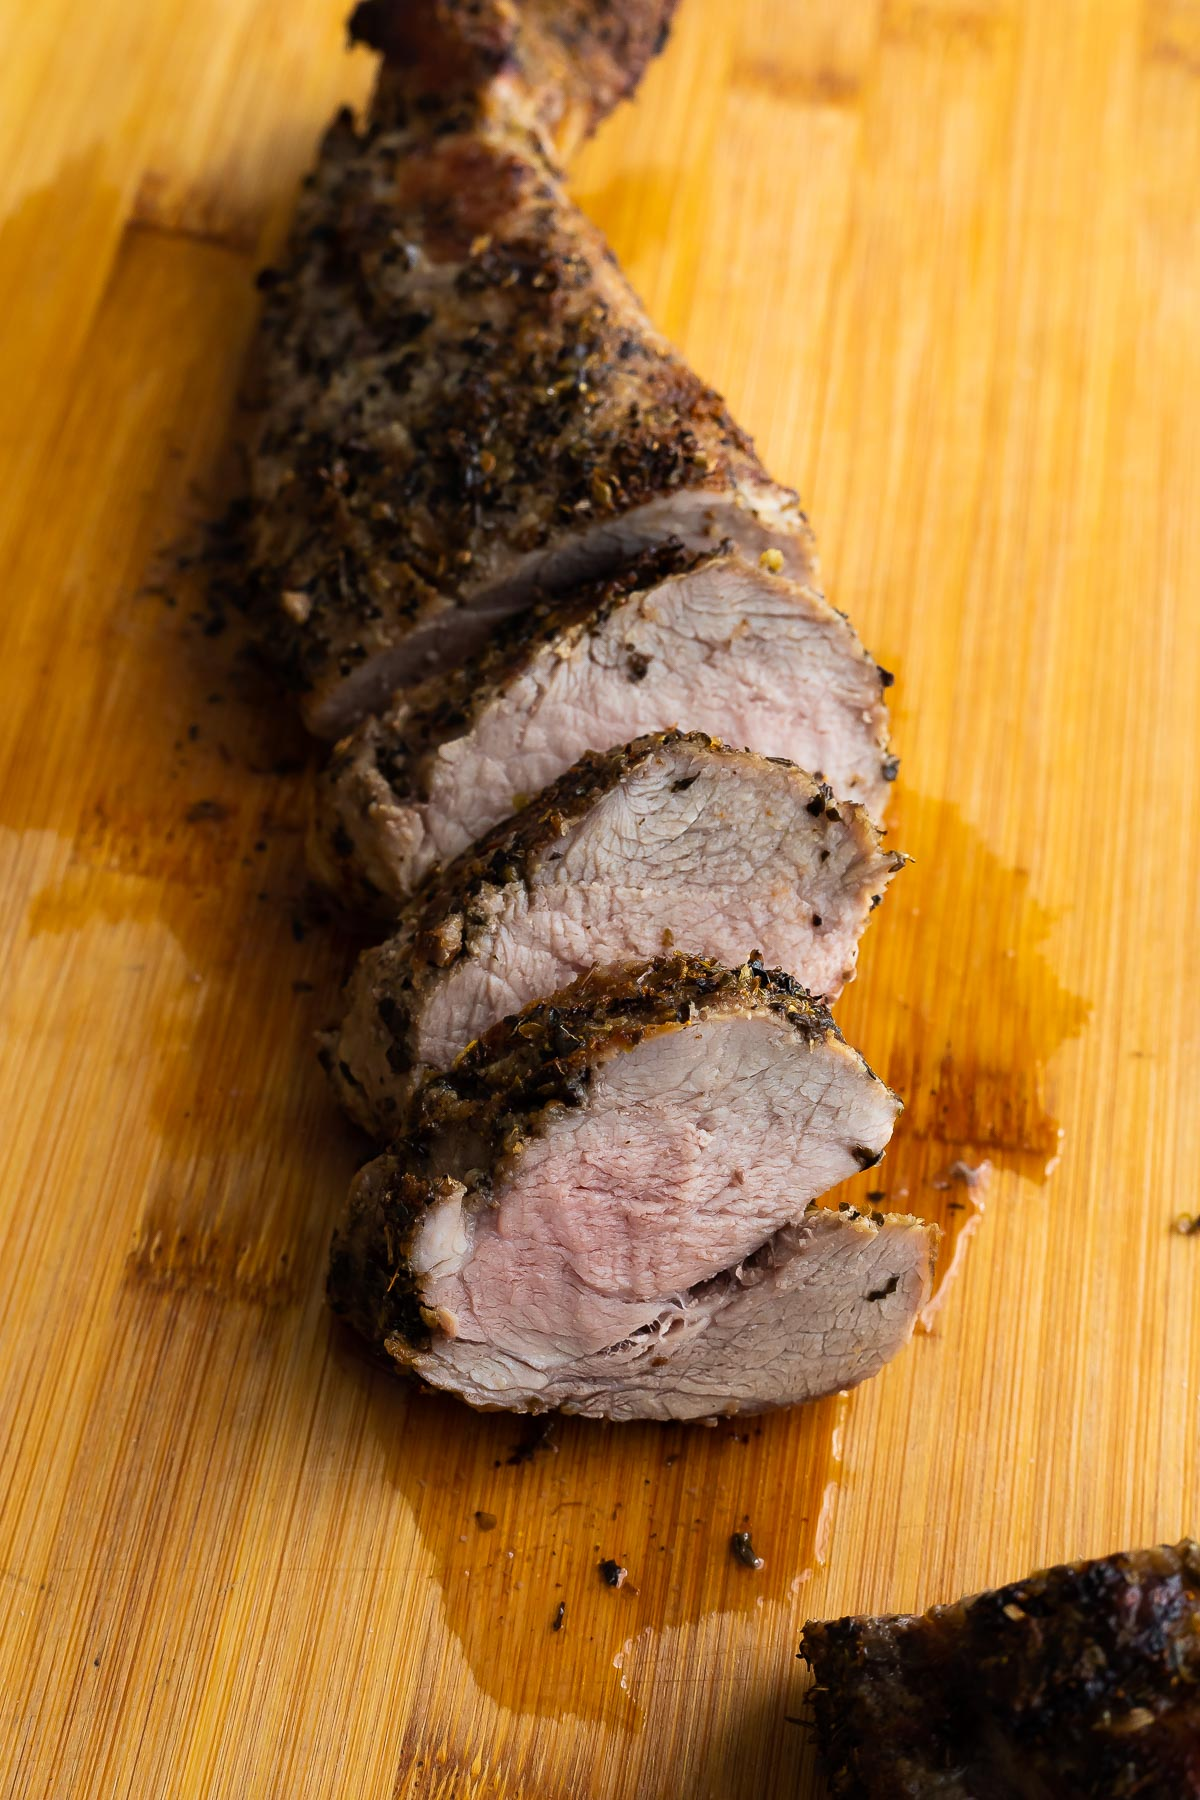 side angle view of sliced pork tenderloin on cutting board